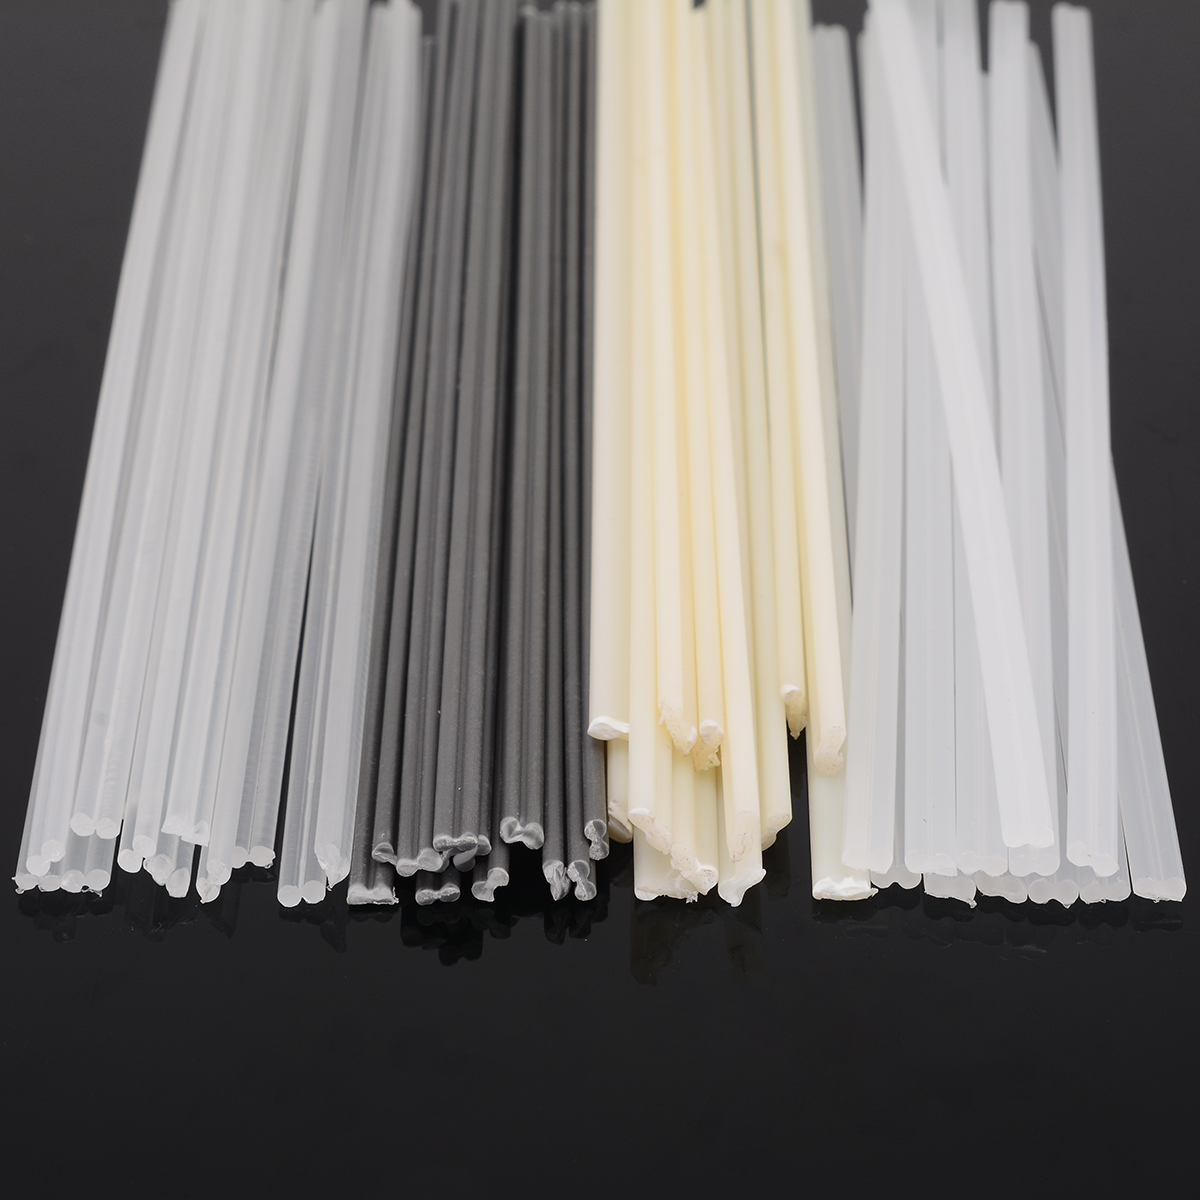 50pcs Plastic Welding Rods Bumper Repair ABS/PP/PVC/PE Welding Sticks Welding Soldering Supplies Grey White Black Beige Color